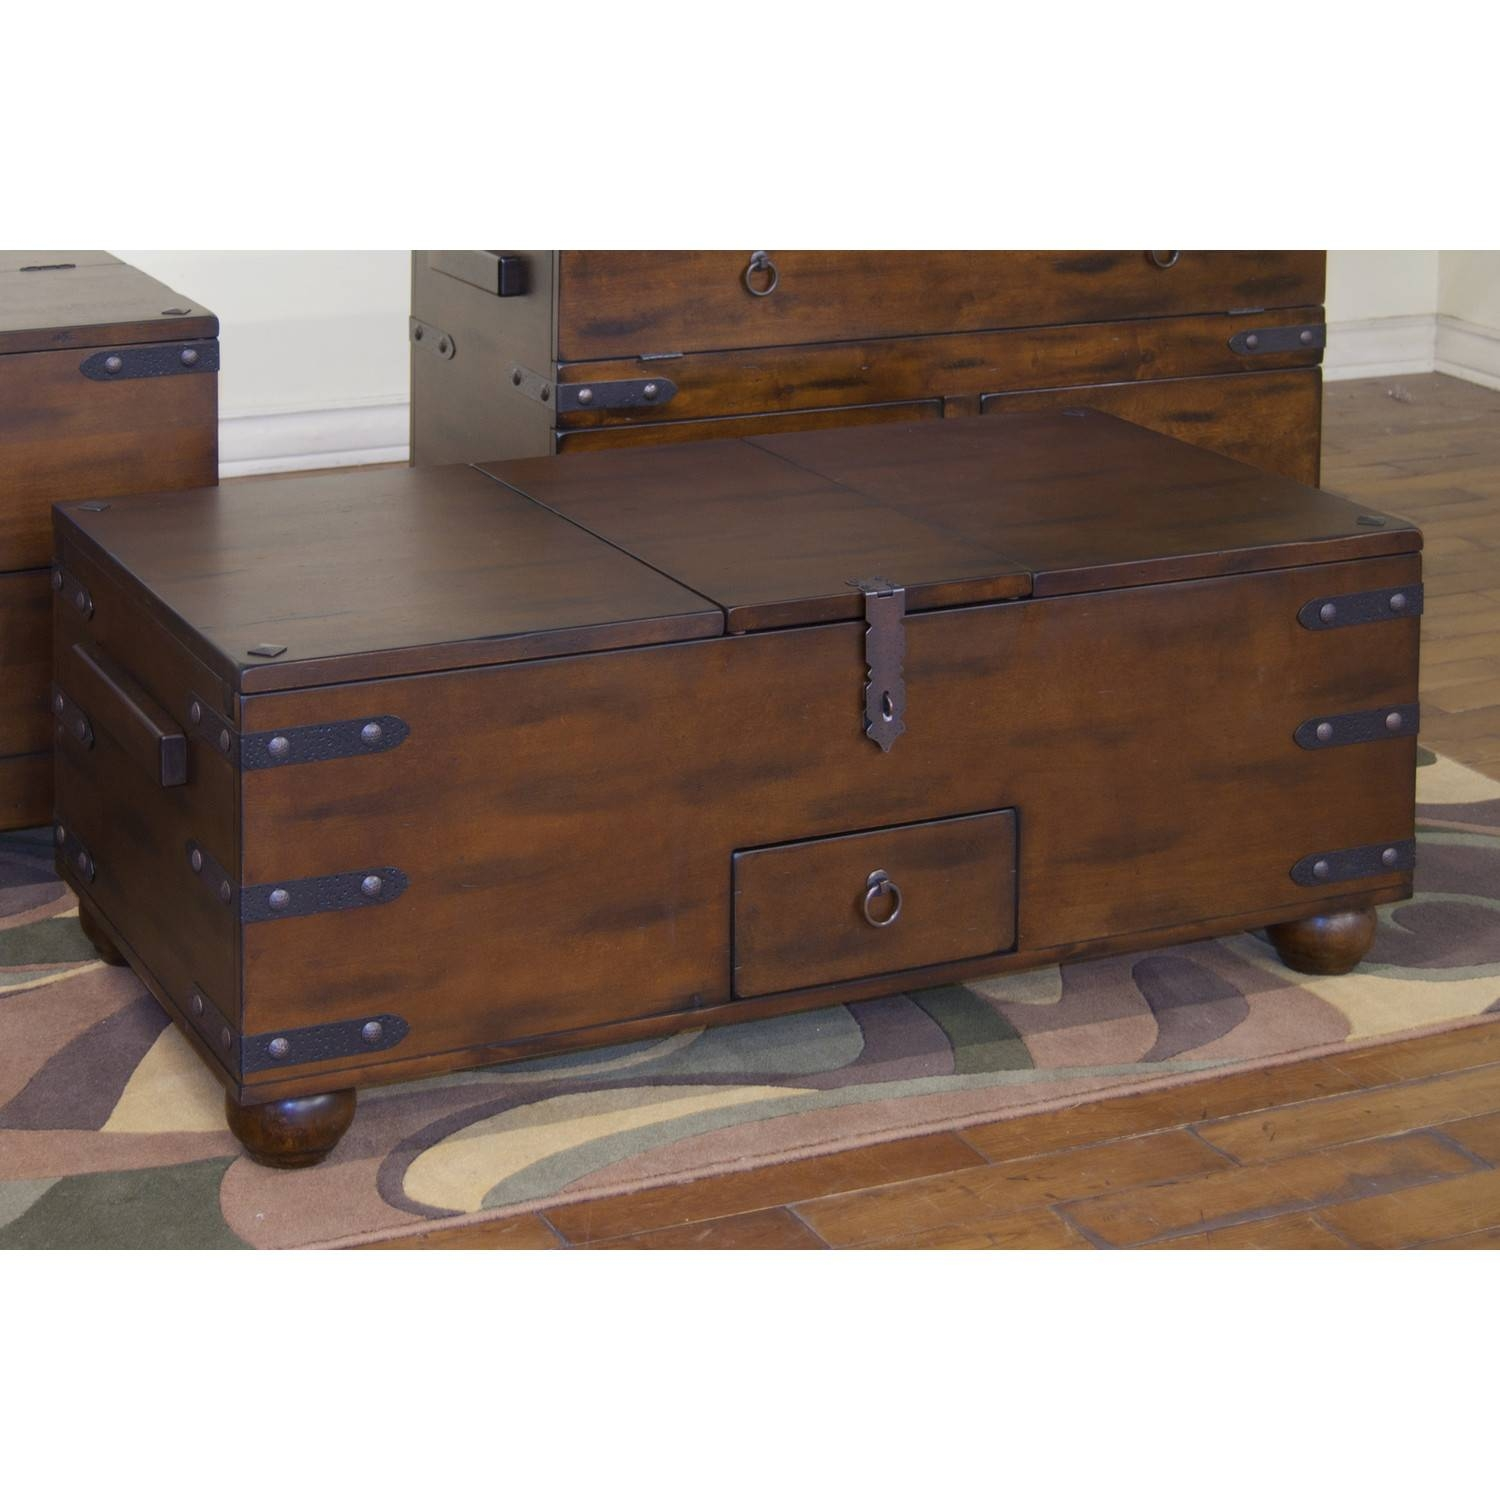 Trunk Coffee Tables In Wonderful Looks! intended for Trunks Coffee Tables (Image 29 of 30)